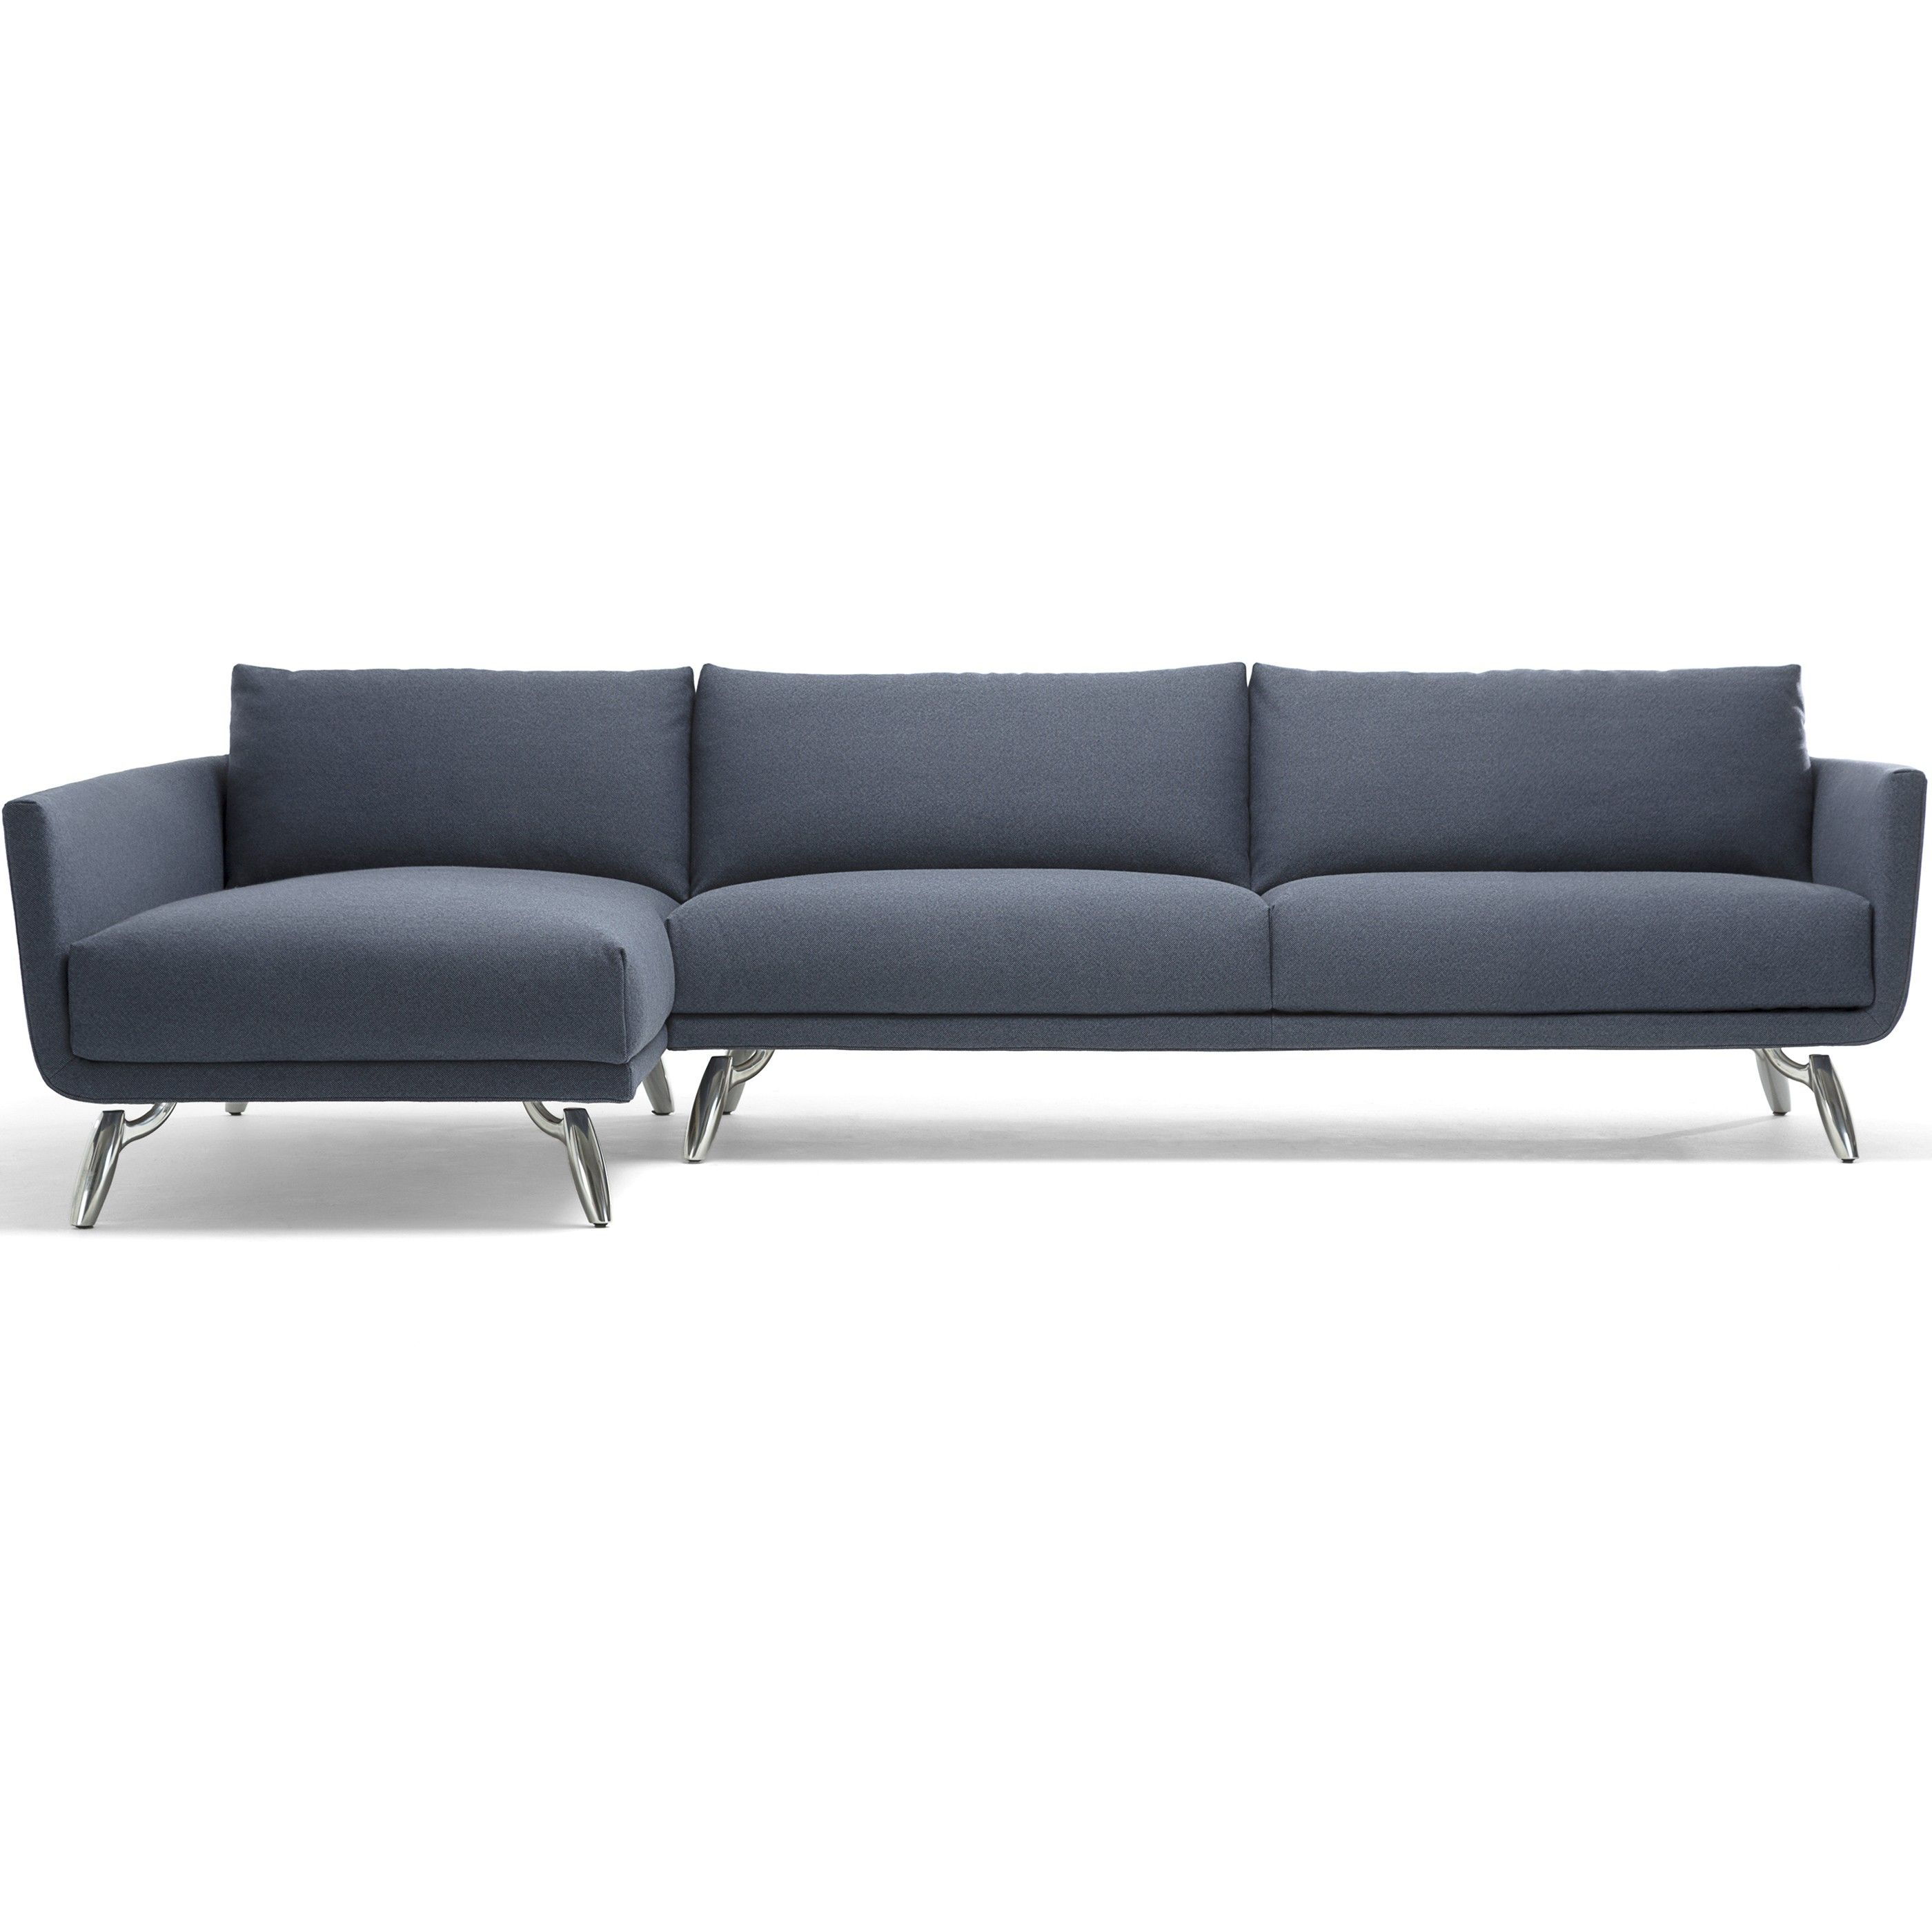 Design Bank Met Chaise Longue.Banken Design Dusmun